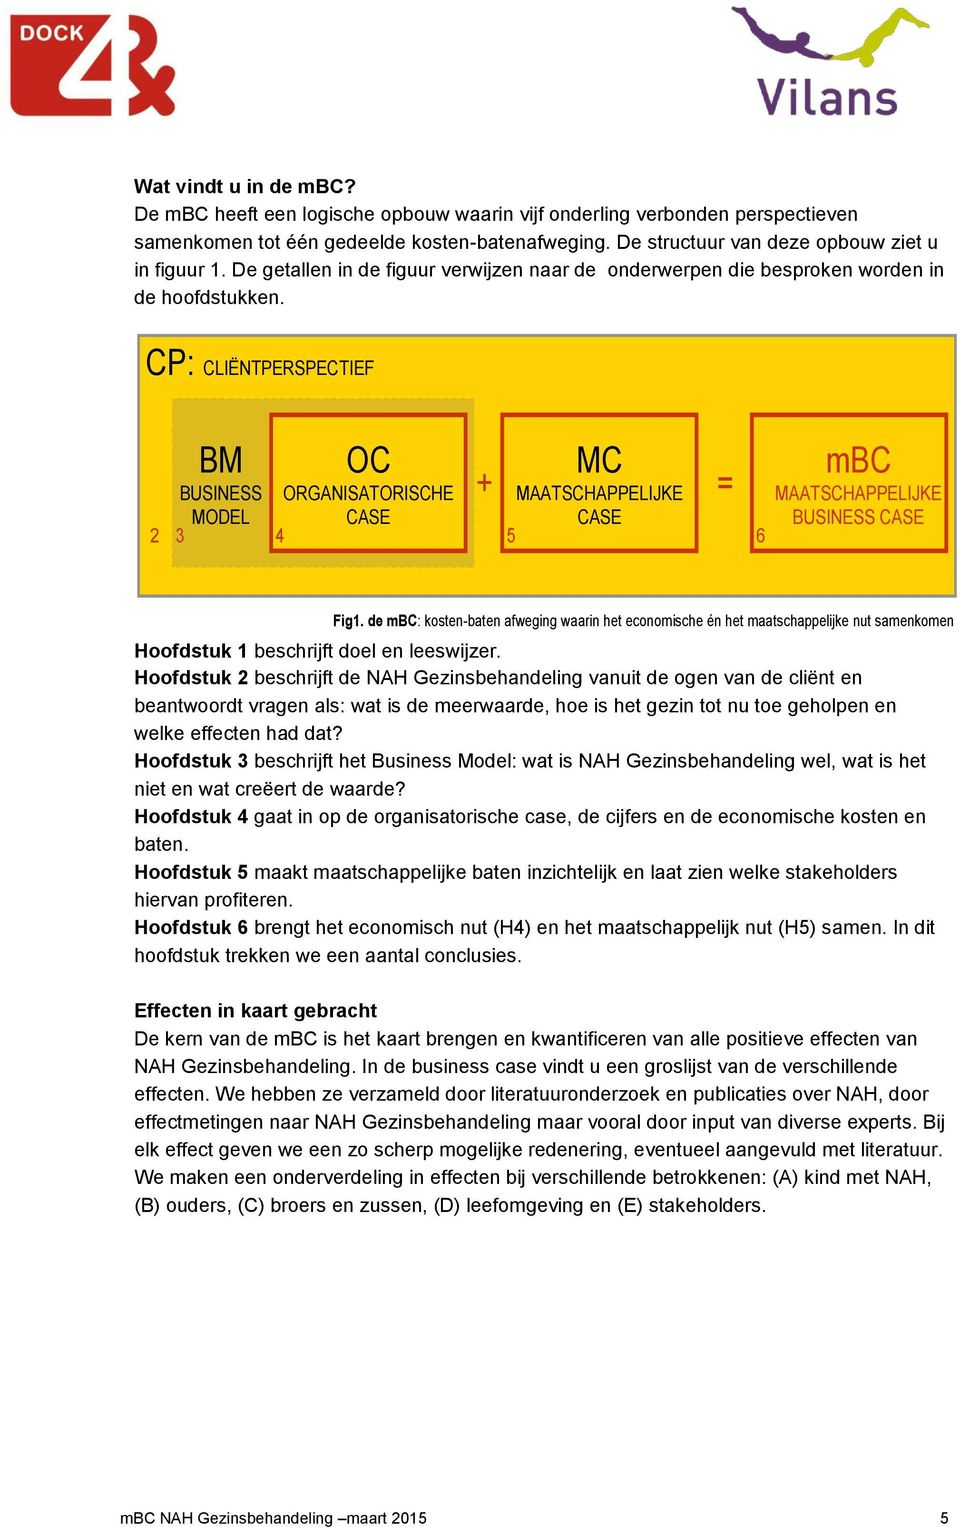 CP: CLIËNTPERSPECTIEF BM BUSINESS MODEL OC ORGANISATORISCHE CASE MC + = MAATSCHAPPELIJKE CASE 2 3 4 5 6 mbc MAATSCHAPPELIJKE BUSINESS CASE Fig1.